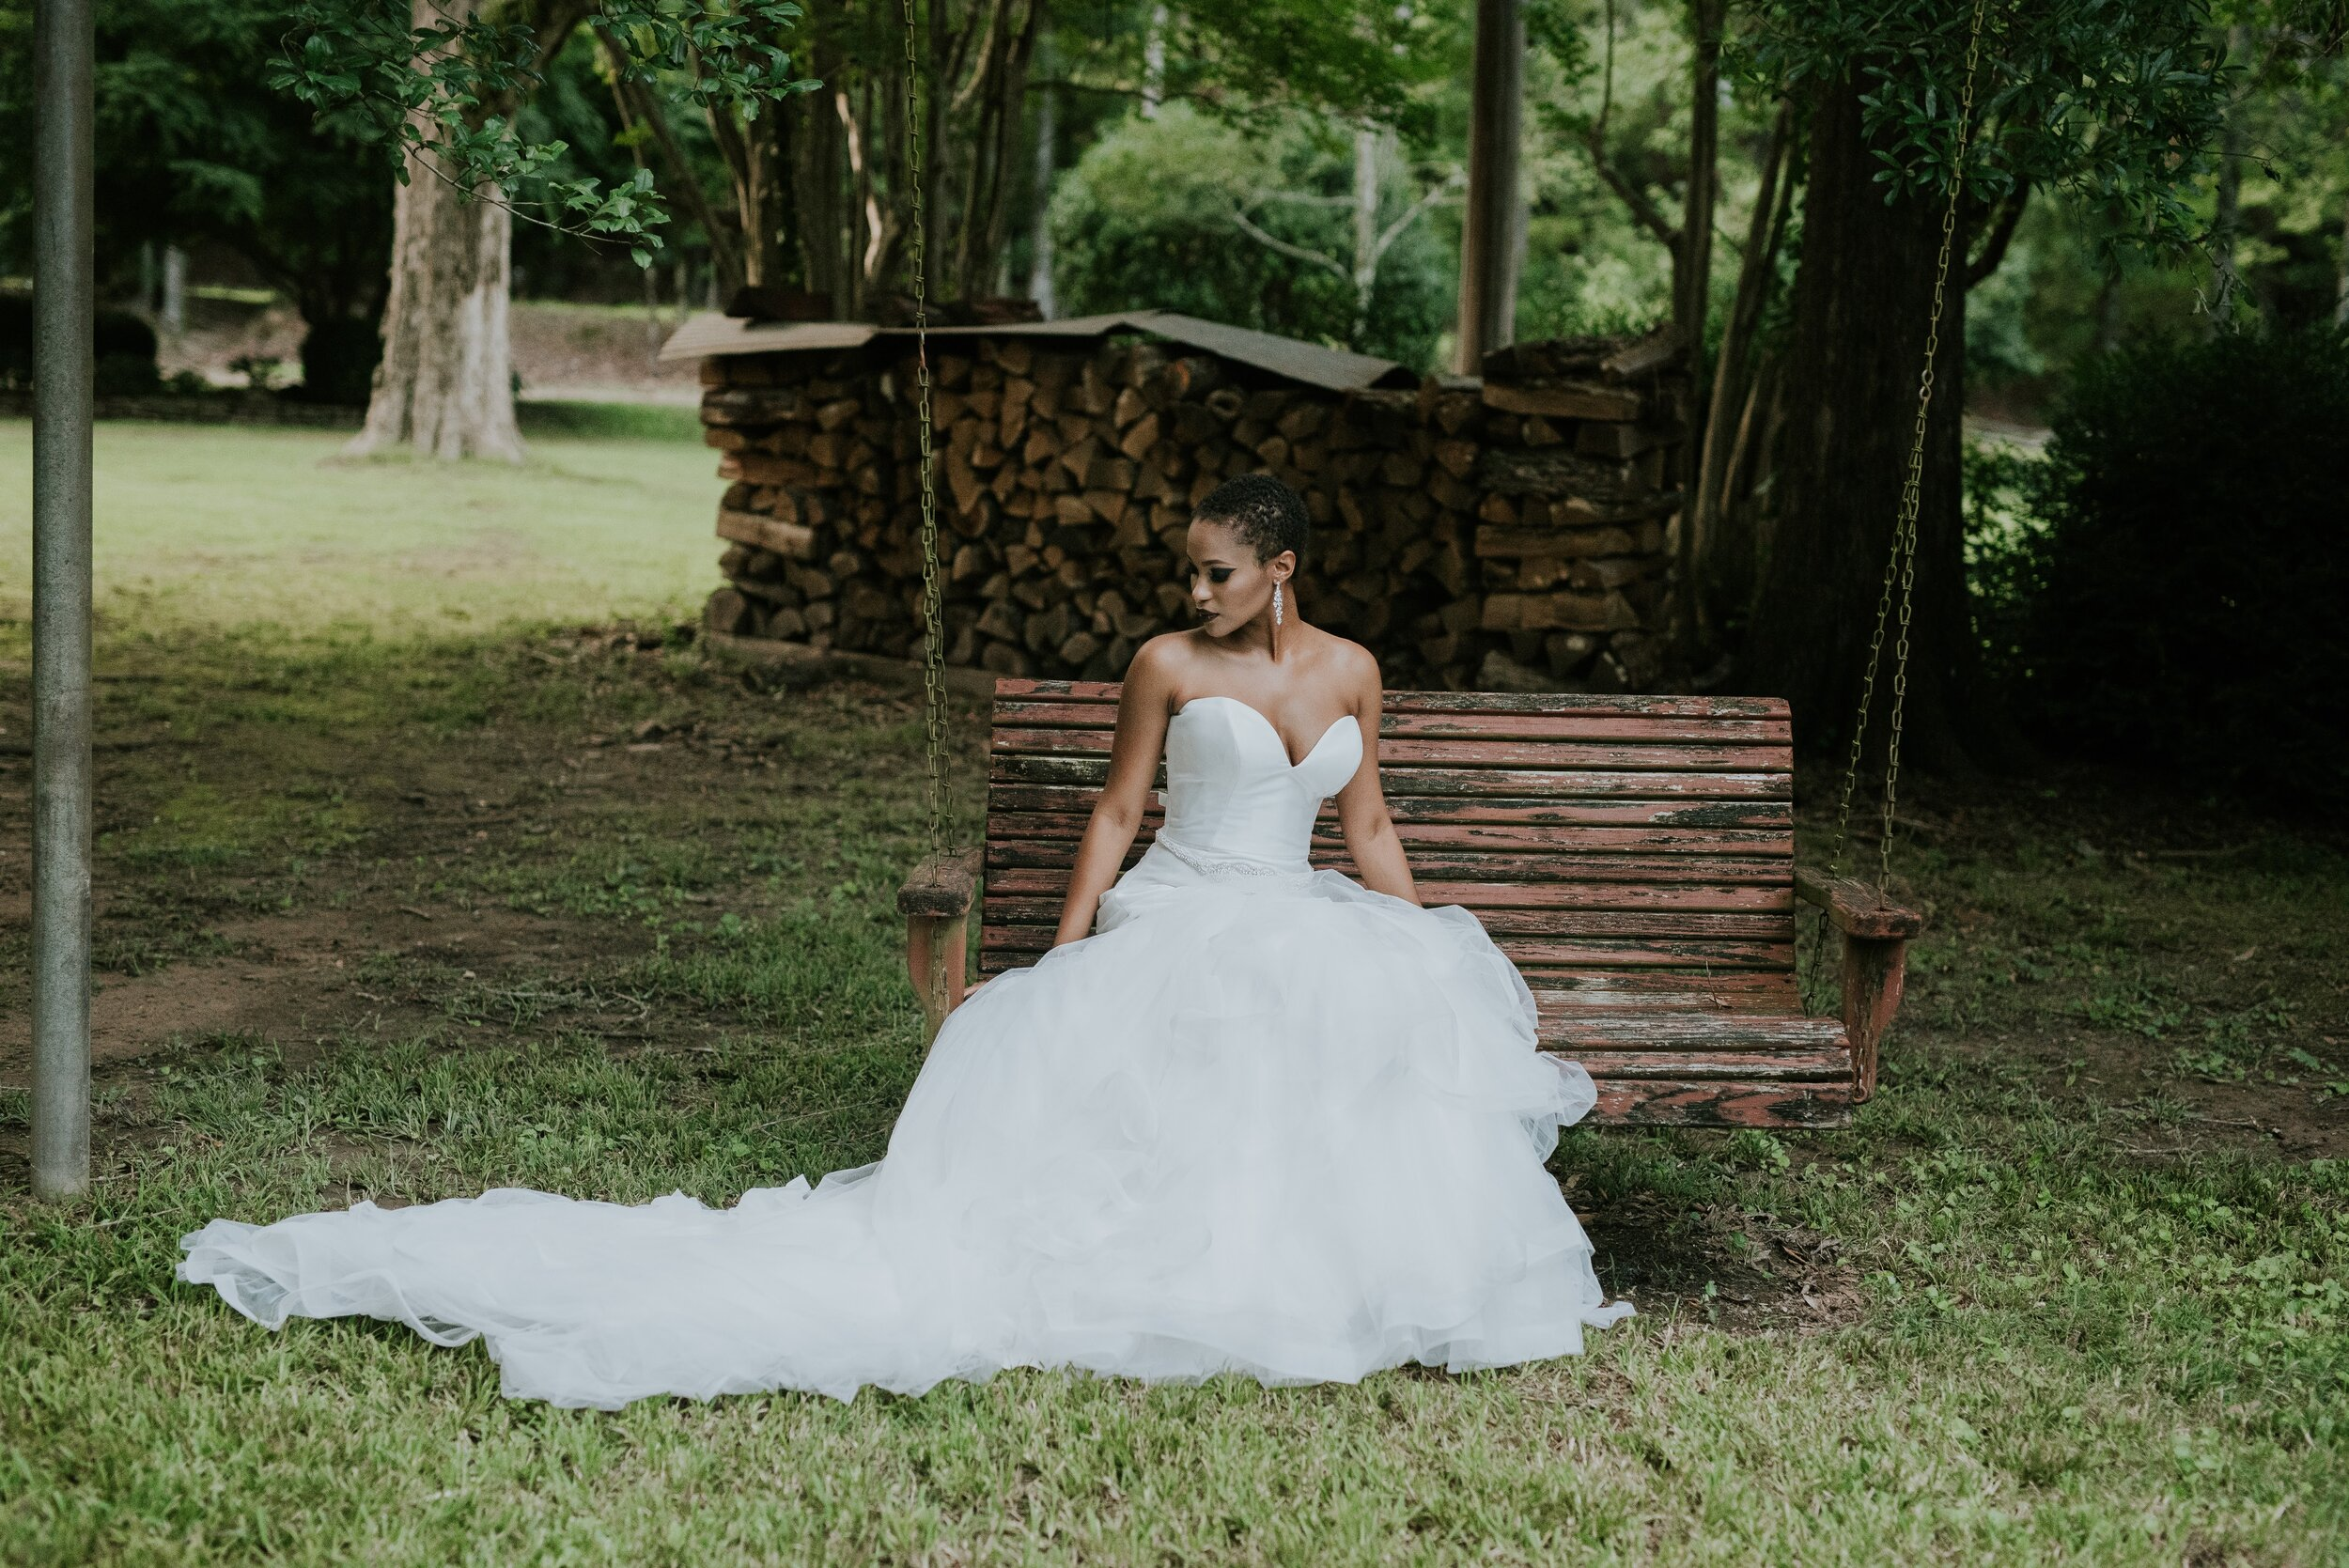 Bride on a swing in Arkansas for outdoor photography